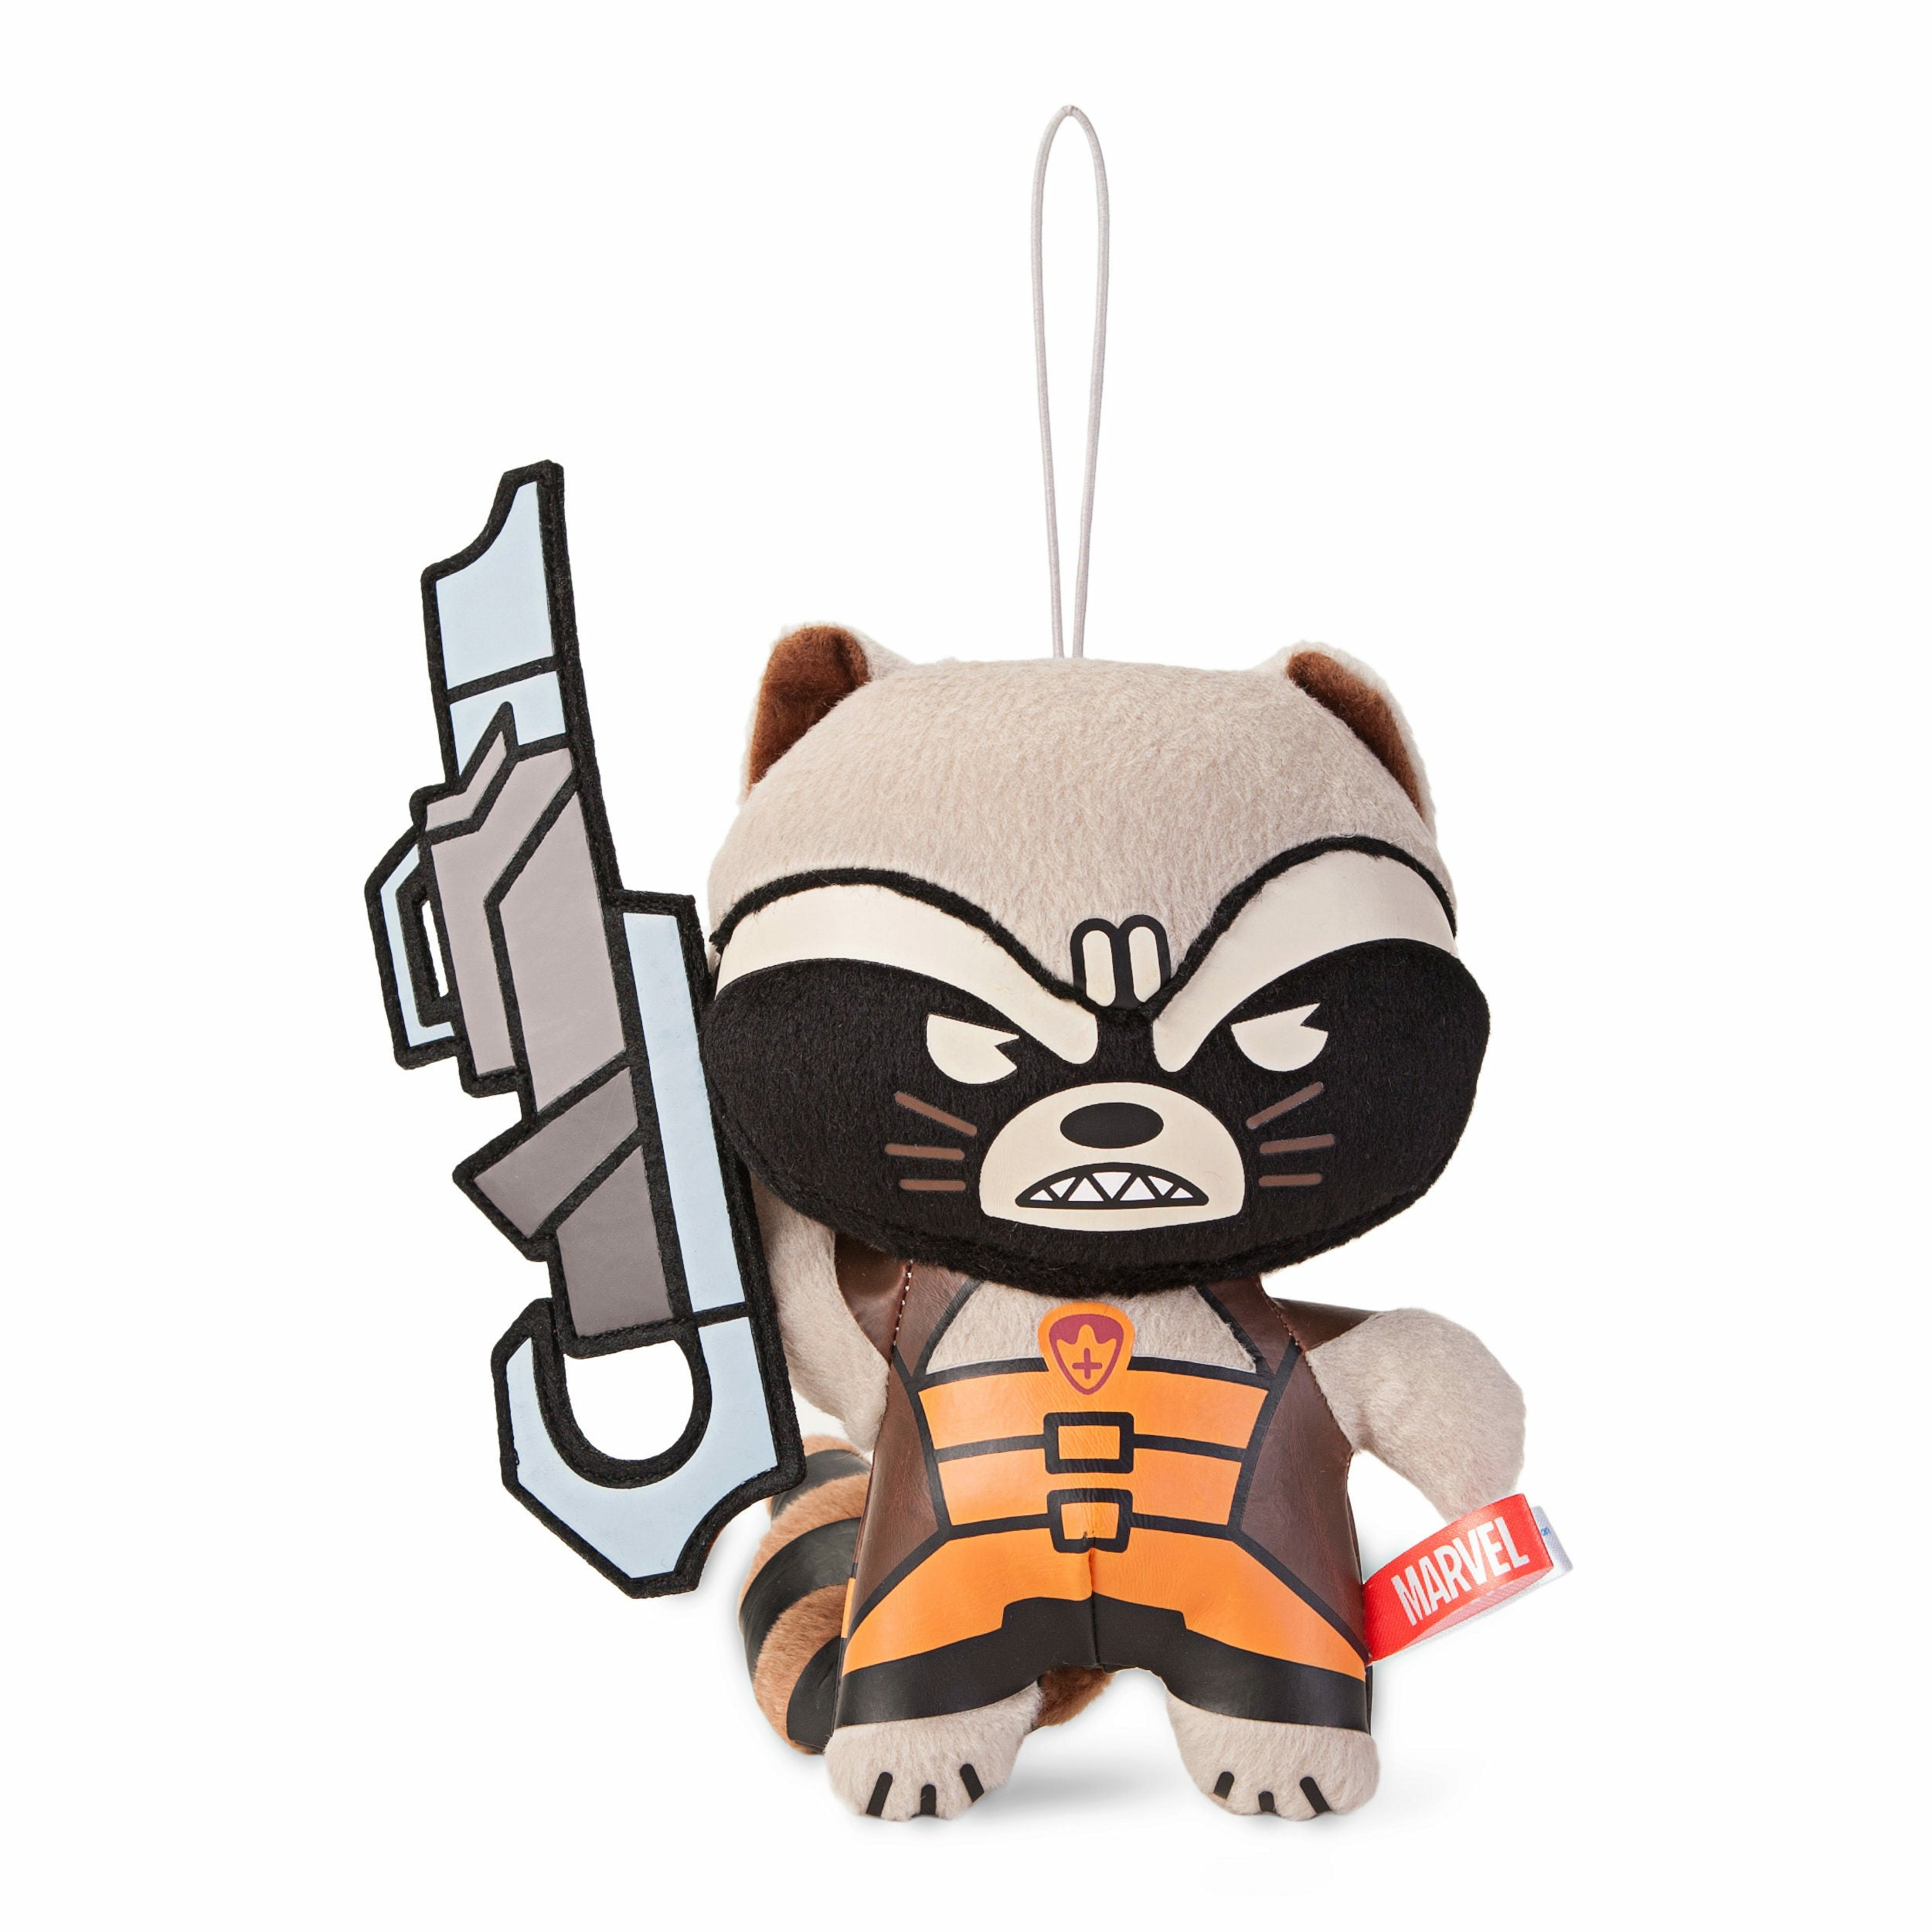 Marvel Kawaii Art Collection Rocket Raccoon Mini Plush Toy